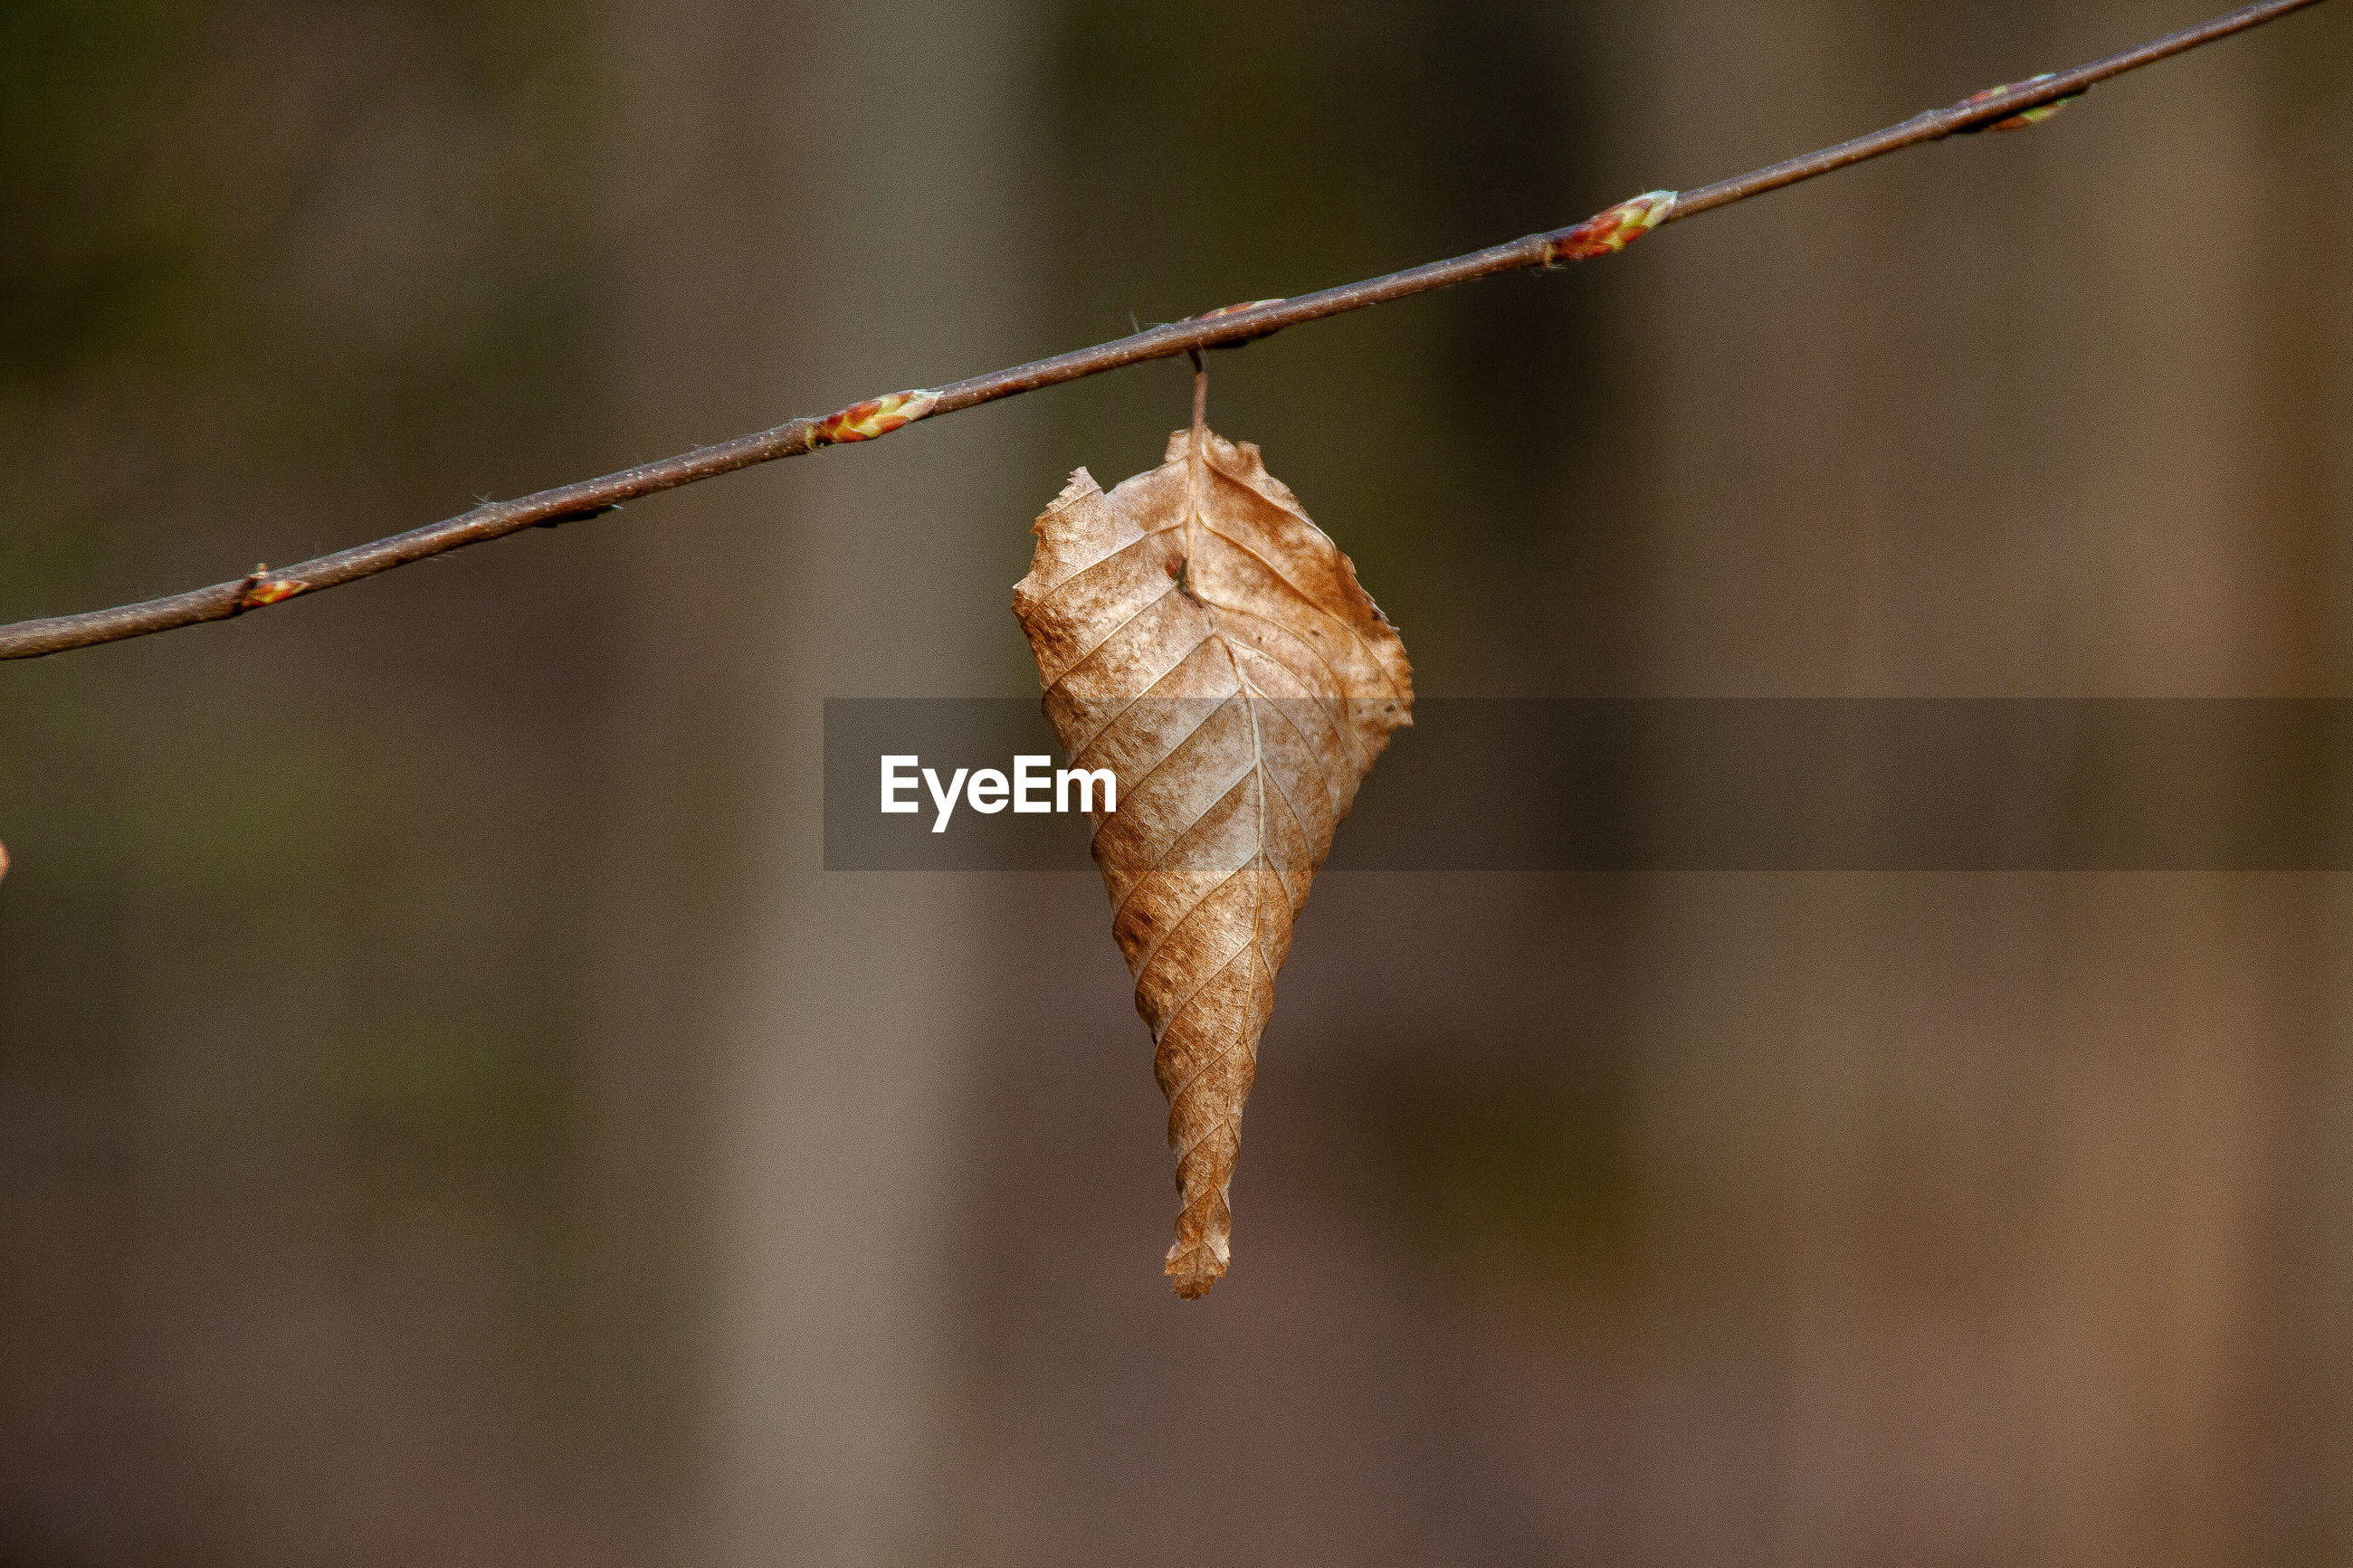 CLOSE-UP OF DRIED PLANT ON TWIG